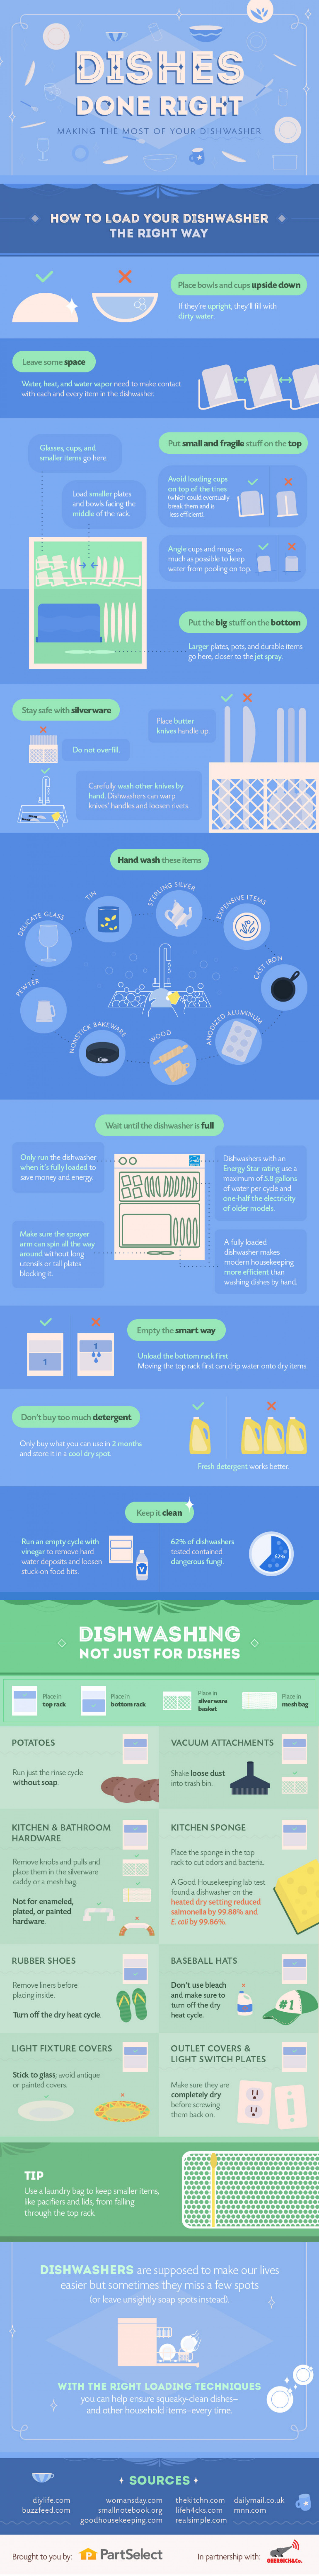 Dishes Done Right: Making the Most of Your Dishwasher Infographic